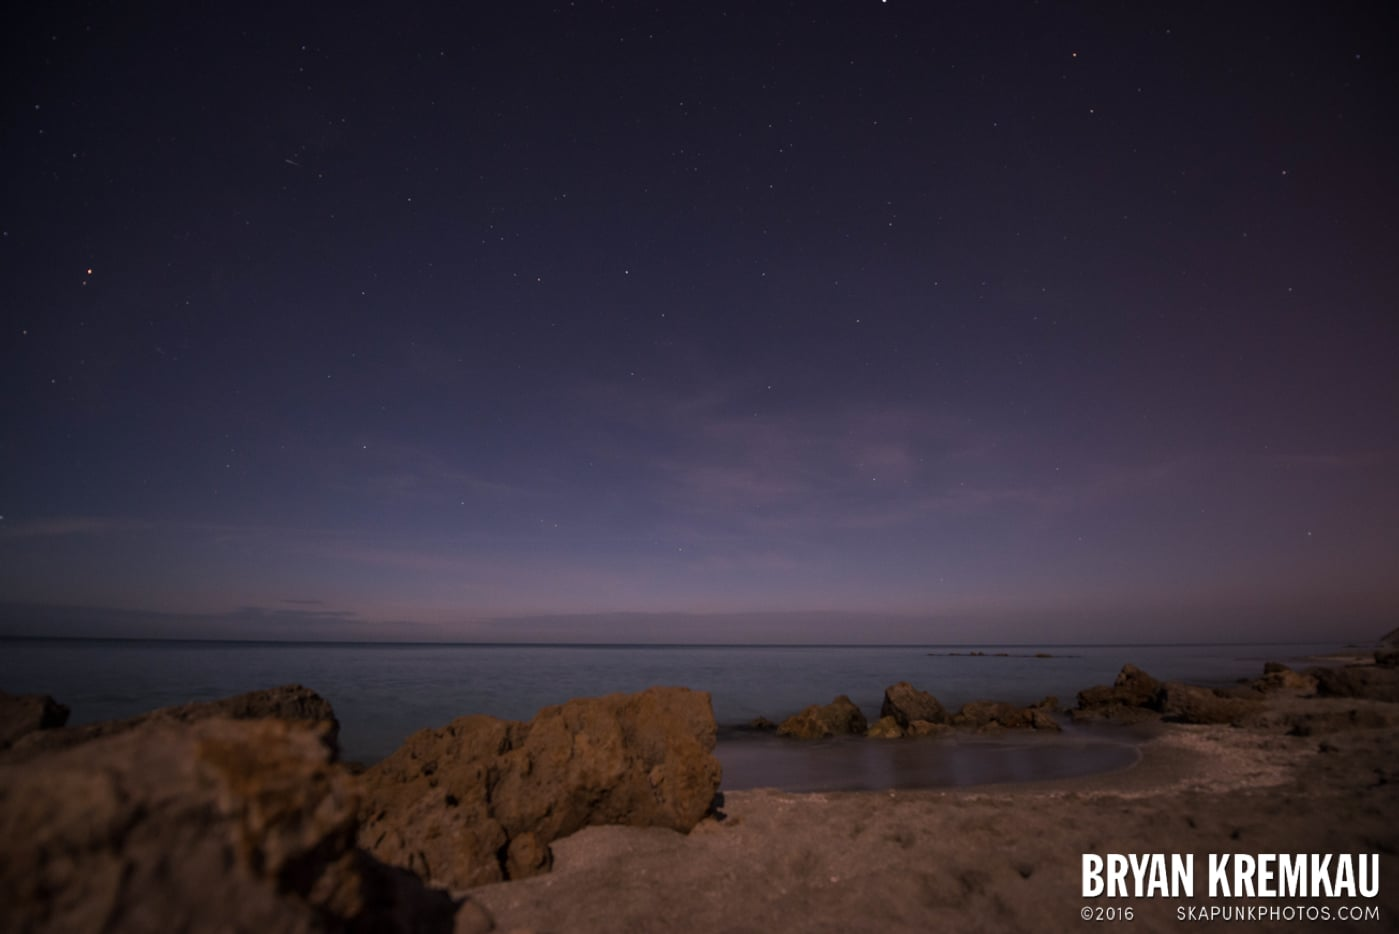 Sunsets, Astrophotography & Birds @ Venice, Florida - 10.25.14 - 11.5.14 (41)